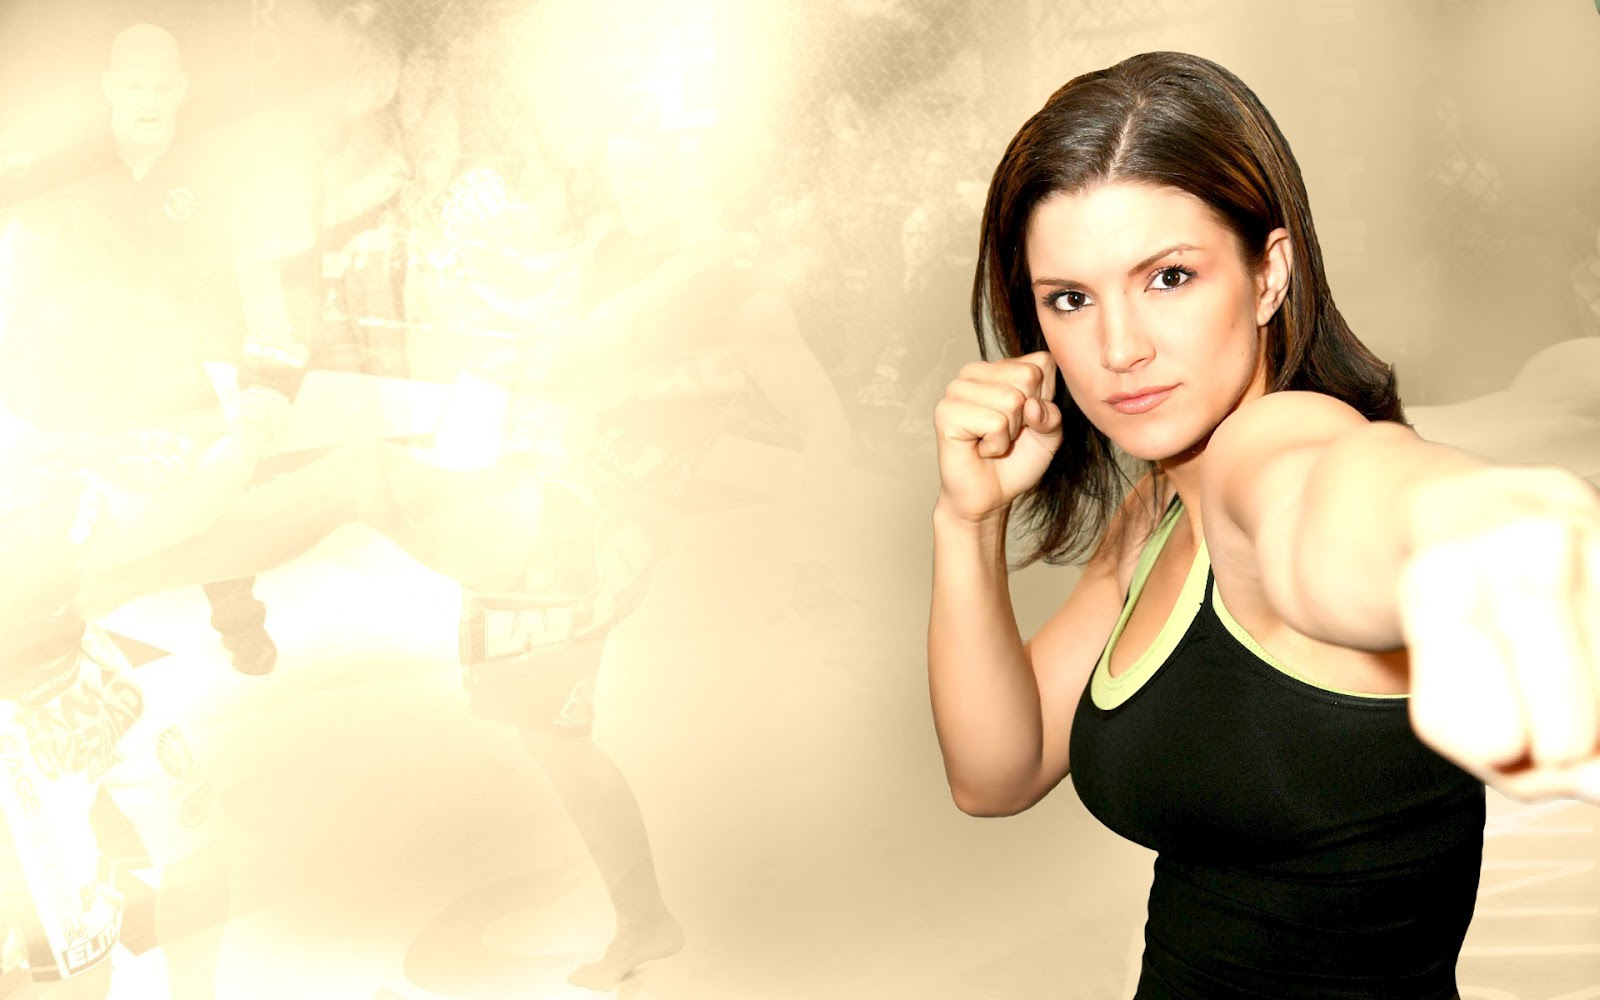 Gina Carano Wallpapers Images Photos Pictures Backgrounds